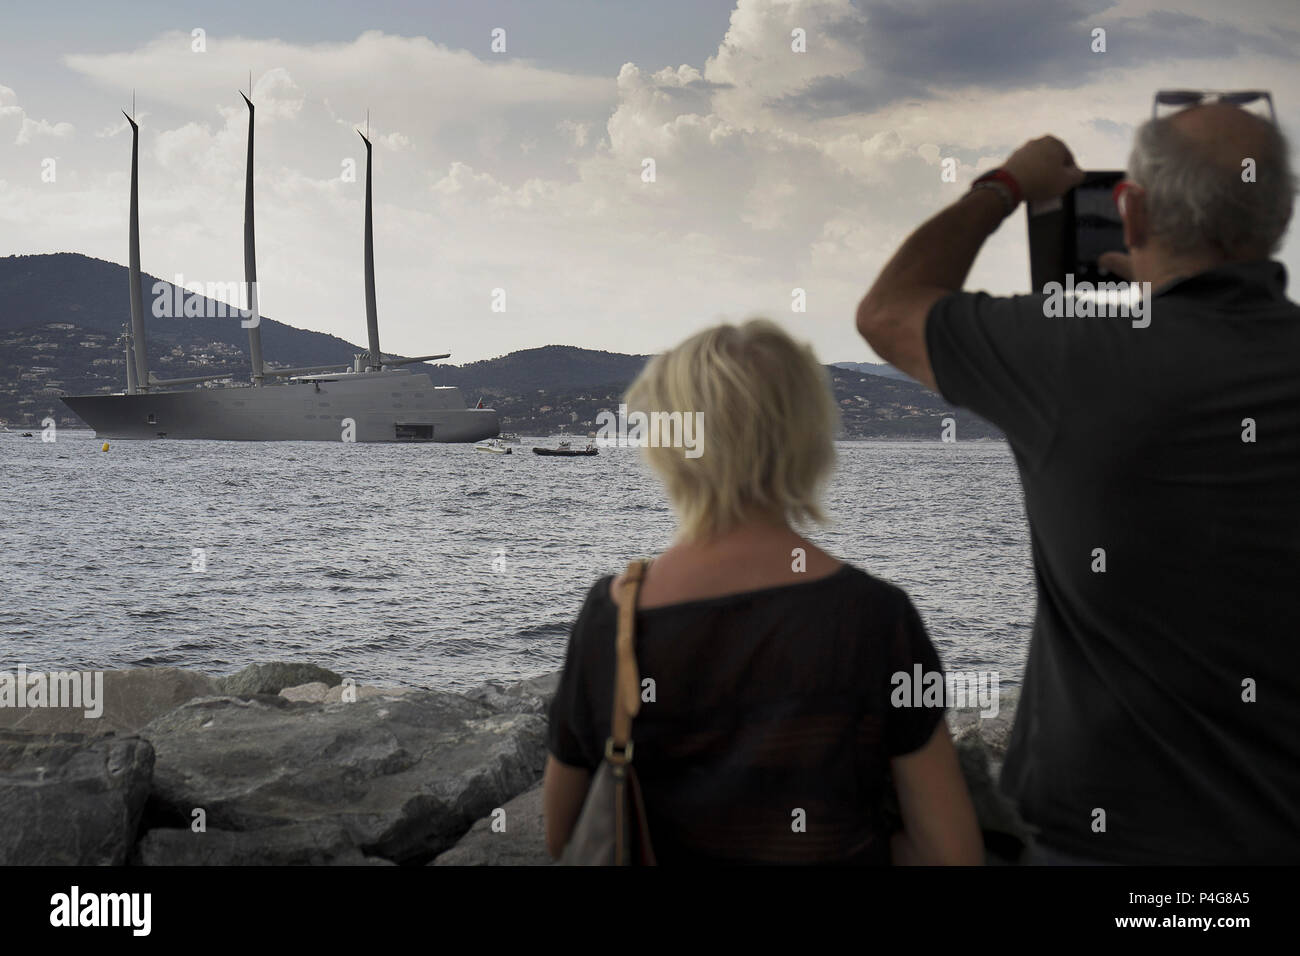 """Saint Tropez. France 21th, 2018. People look at the big """"Sailing A"""" in front of Saint Tropez Gulf. The  Sailing A is the biggest sailing yacht in the world, build in Germany with the most advanced technology. Lenght 142.81 meters; 12700 tons, designed by Phillippe Starck and Dolker & Voges. The owner of the ship is Andrei Melnichenko from Russia. Photo Alejandro Sala/Alamy Llive News Stock Photo"""